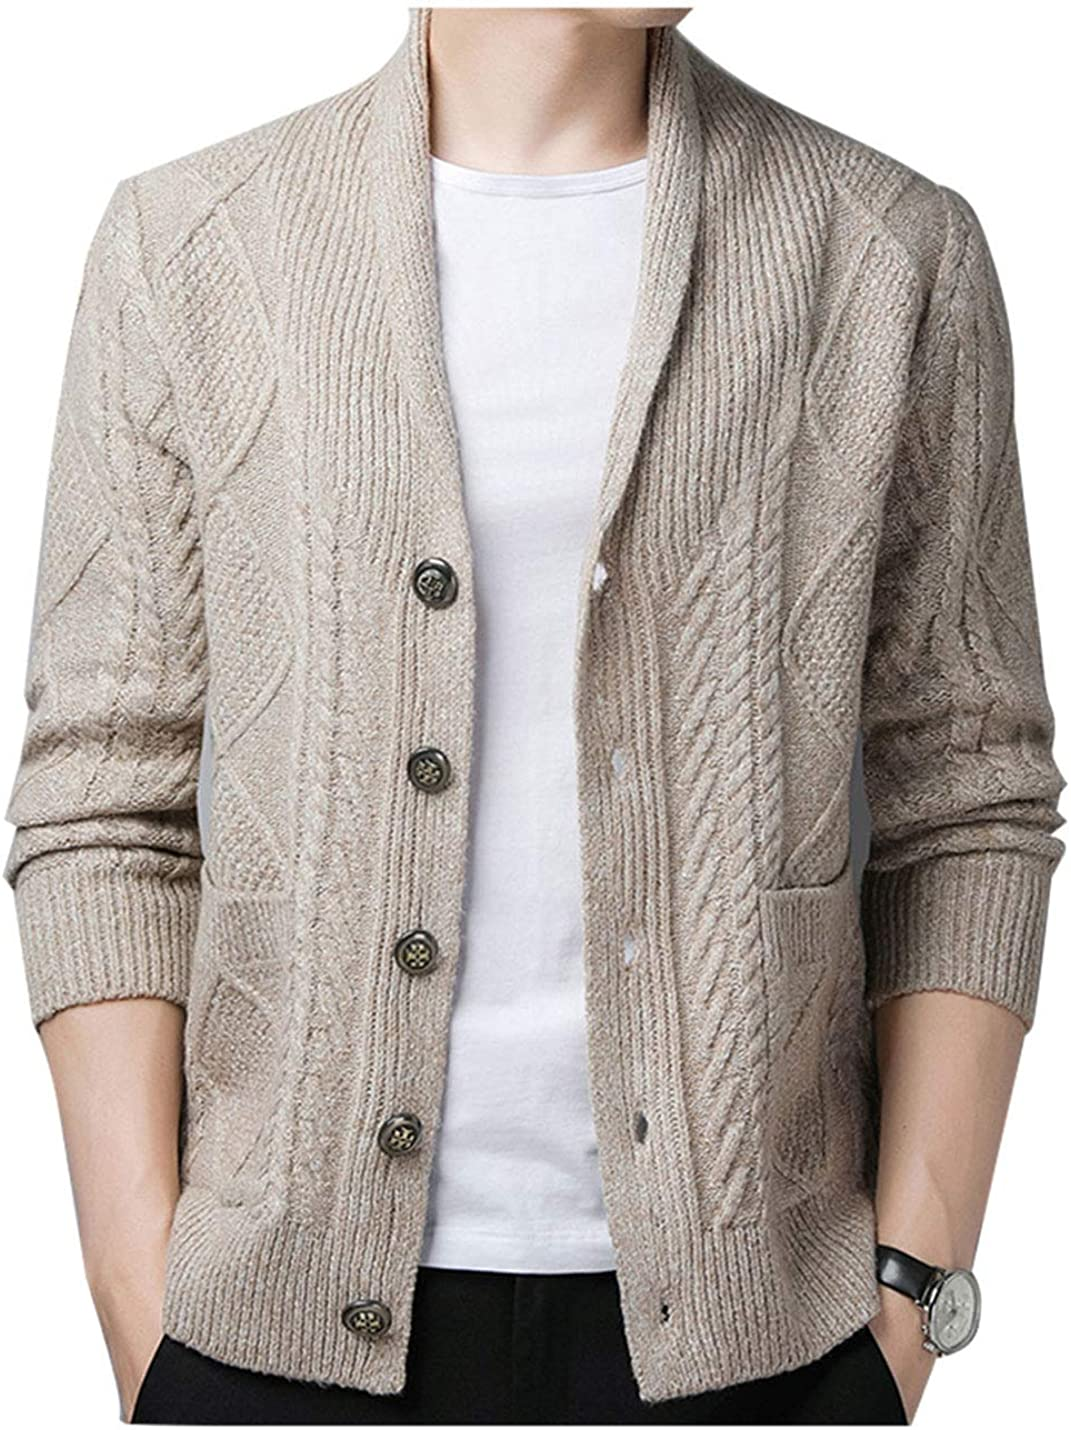 Yeokou Men's Casual Shawl Collar Button Down Cabel Knit Pockets Cardigans Sweaters